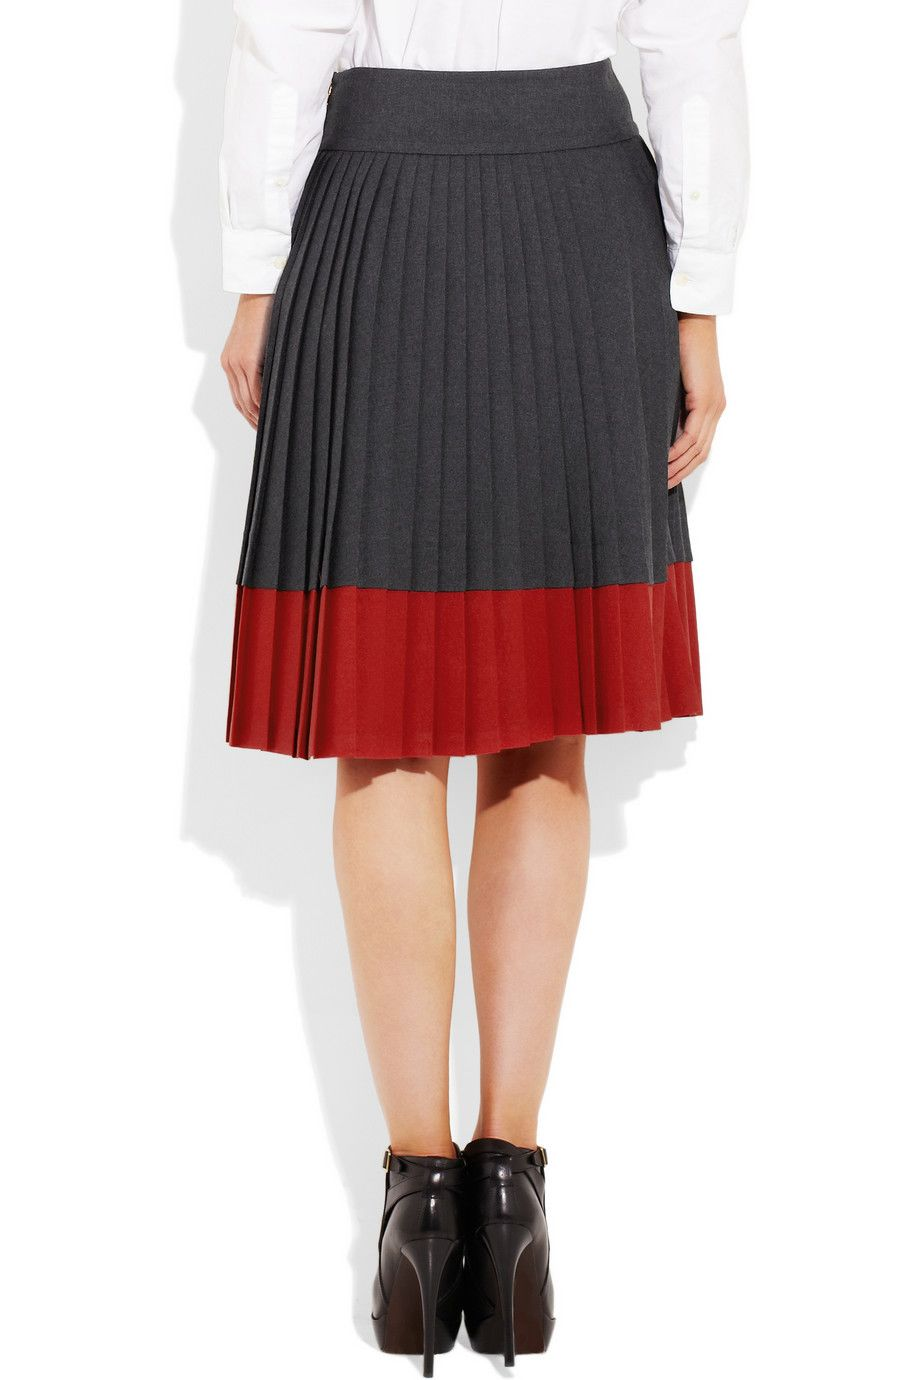 Marc Jacobs Tania tonic pleated skirt 3 Preview Images